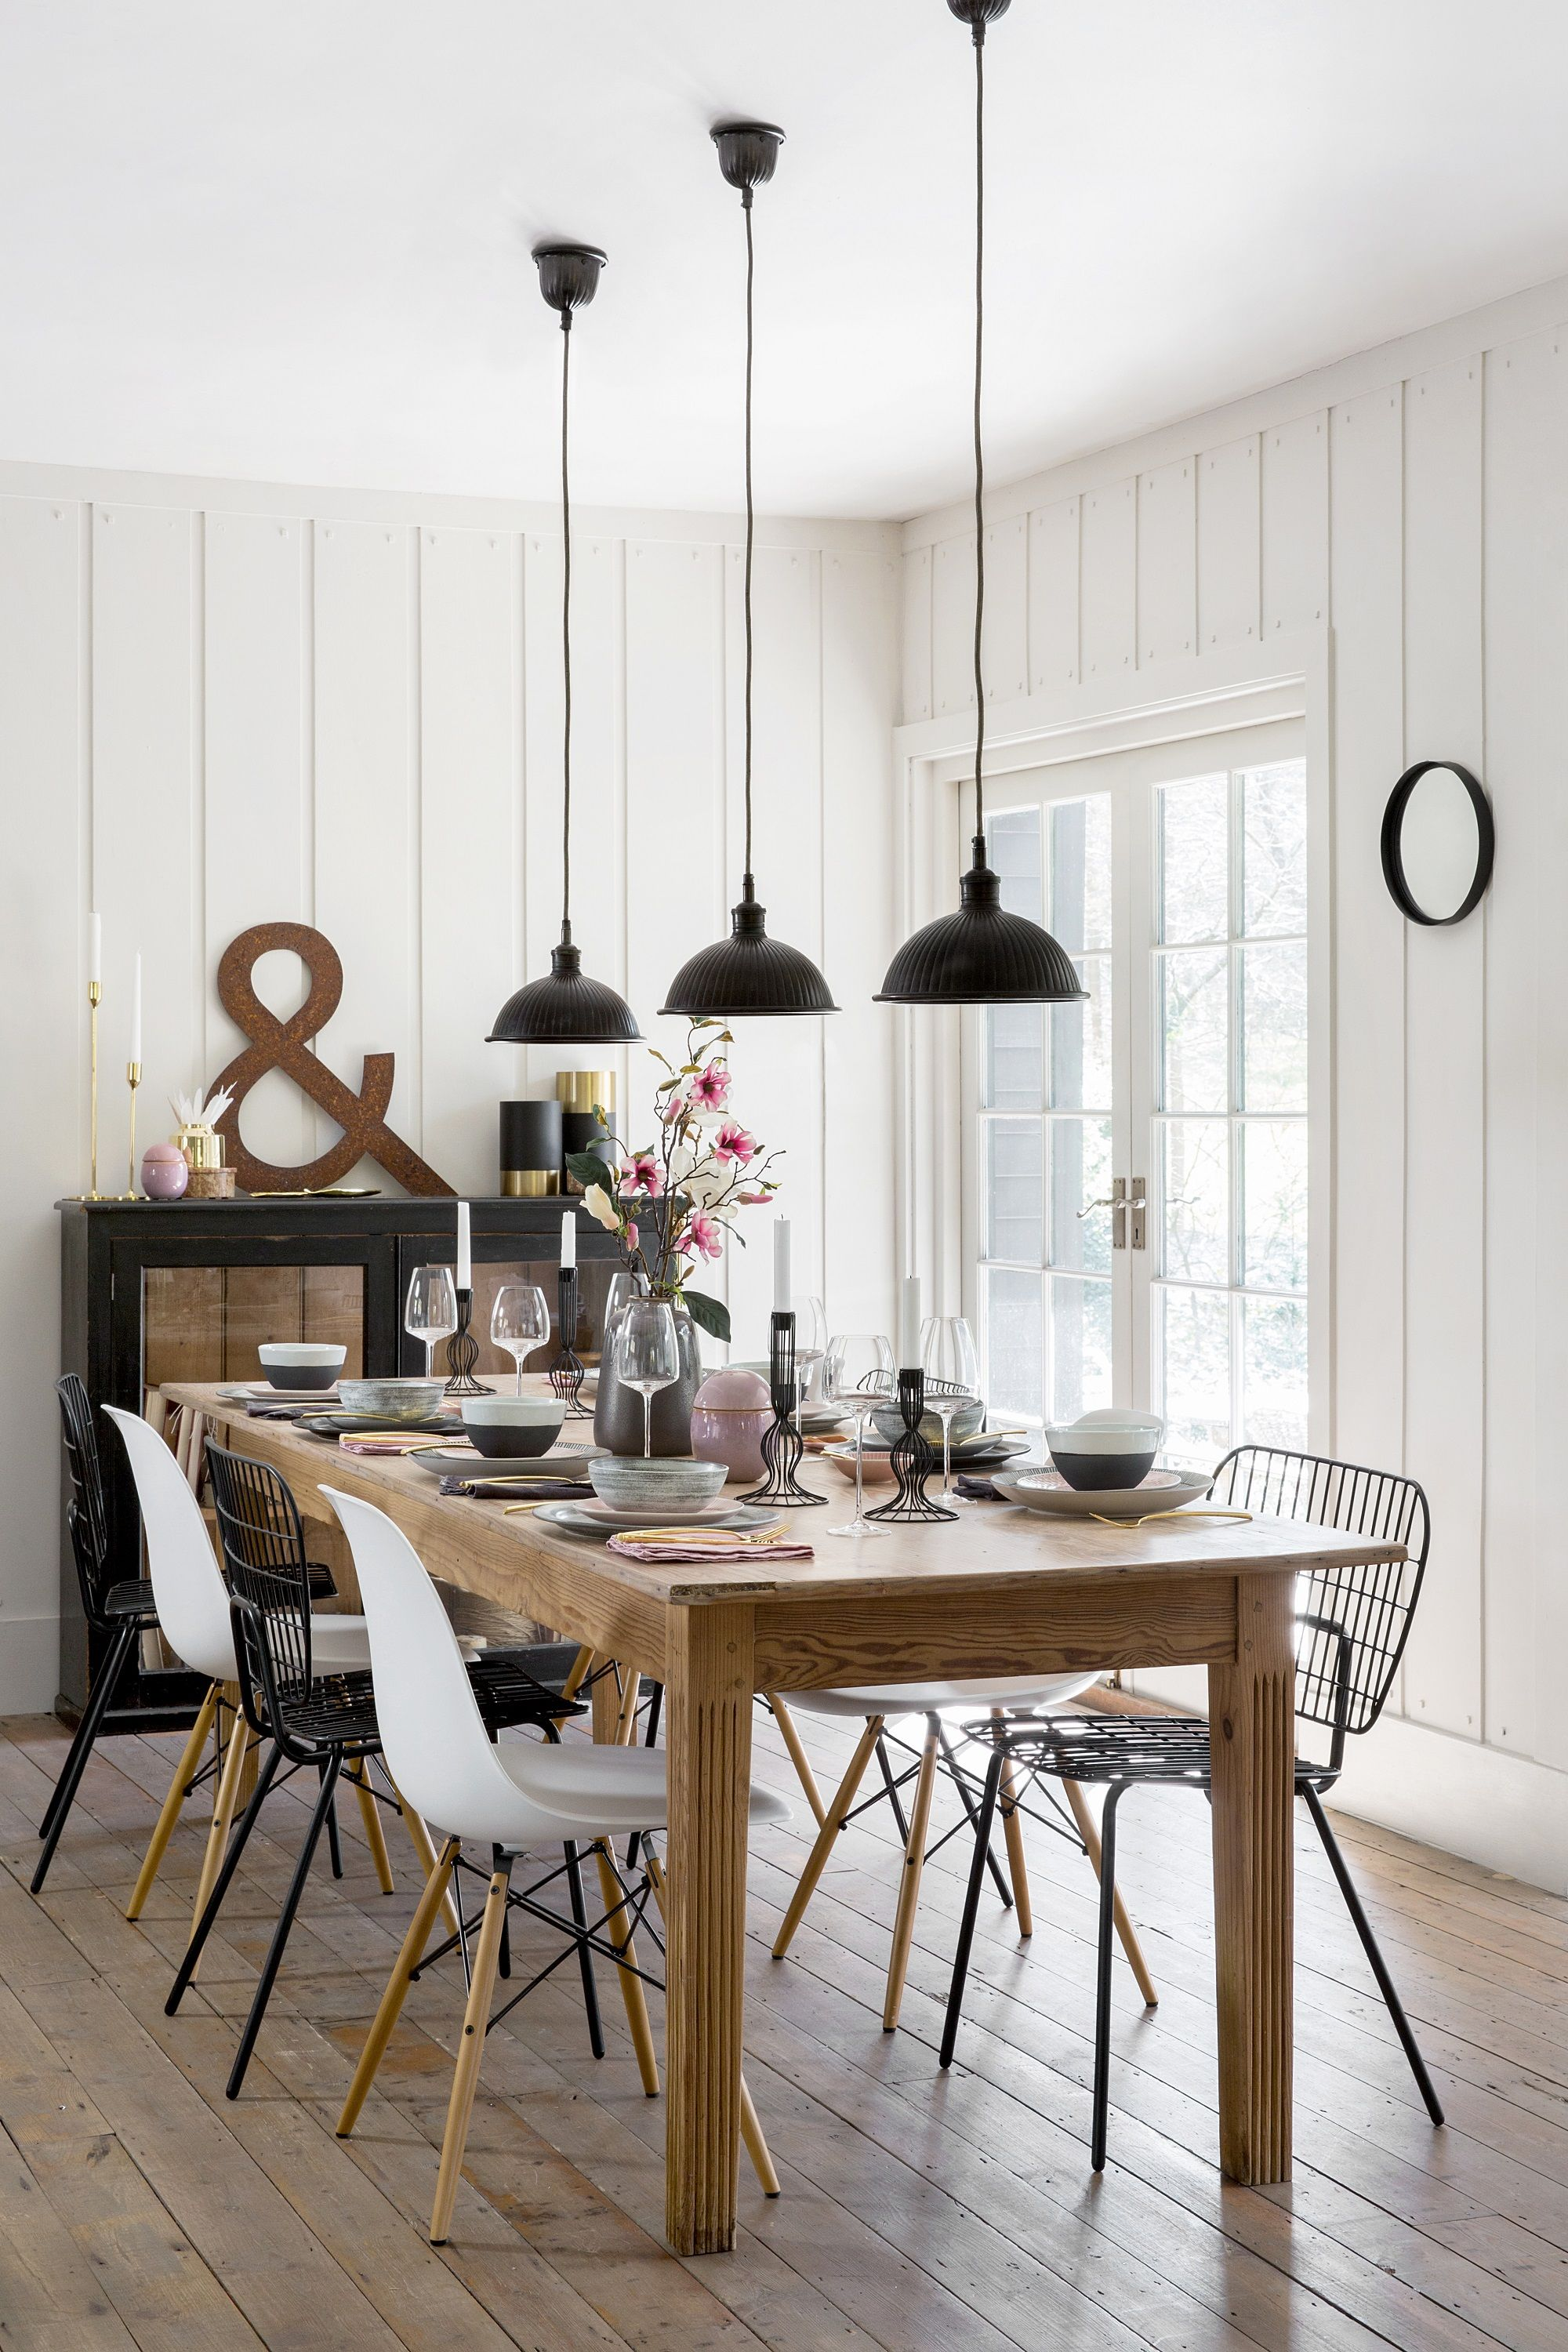 Celina Küchen Finn 20 Best Dining Room Lighting Ideas To Make The Most Of Your Space